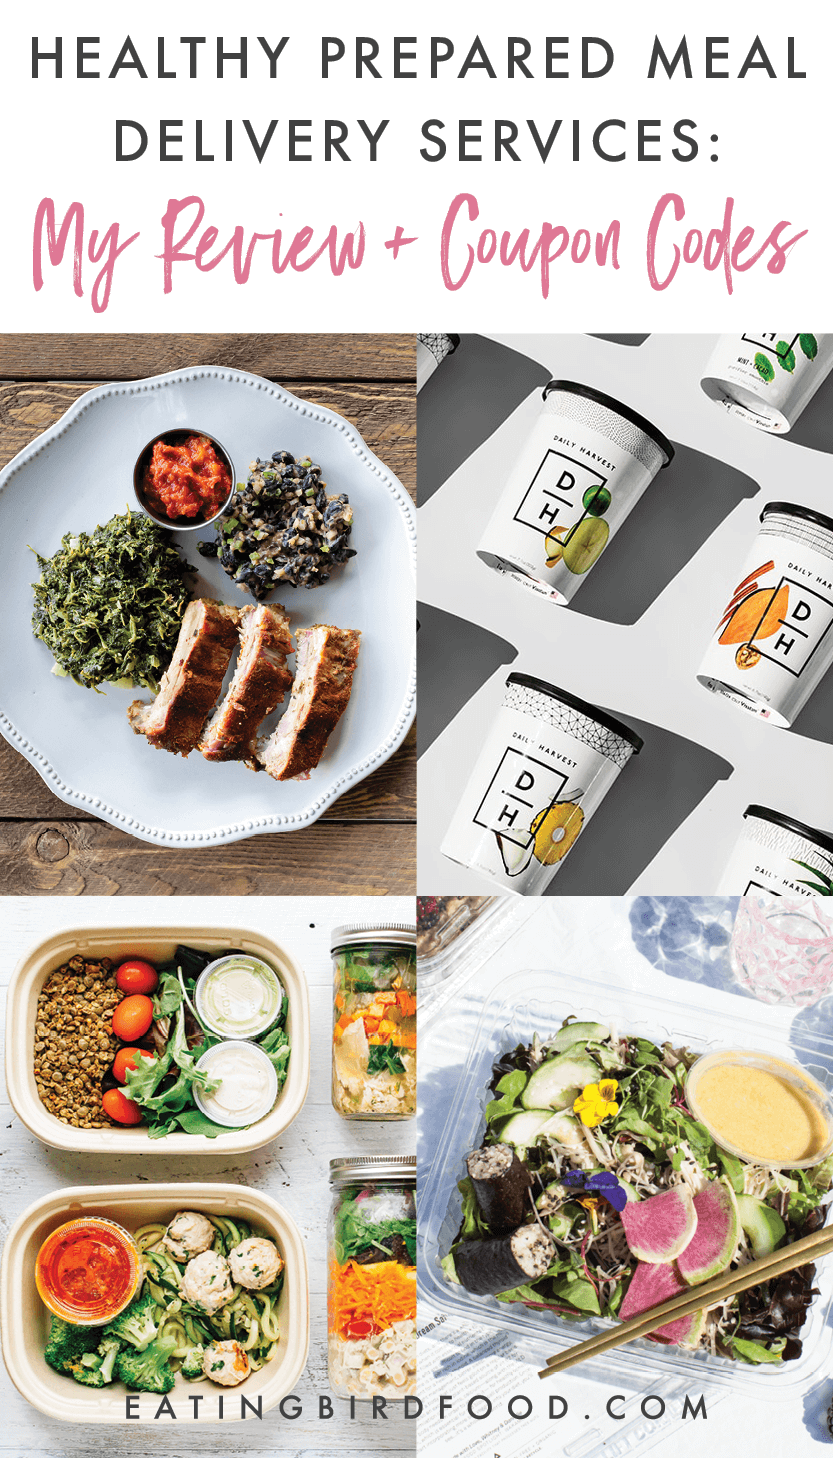 The Best Services For Healthy Prepared Meals Eating Bird Food Healthy Prepared Meals Prepared Meal Delivery Vegan Meal Delivery